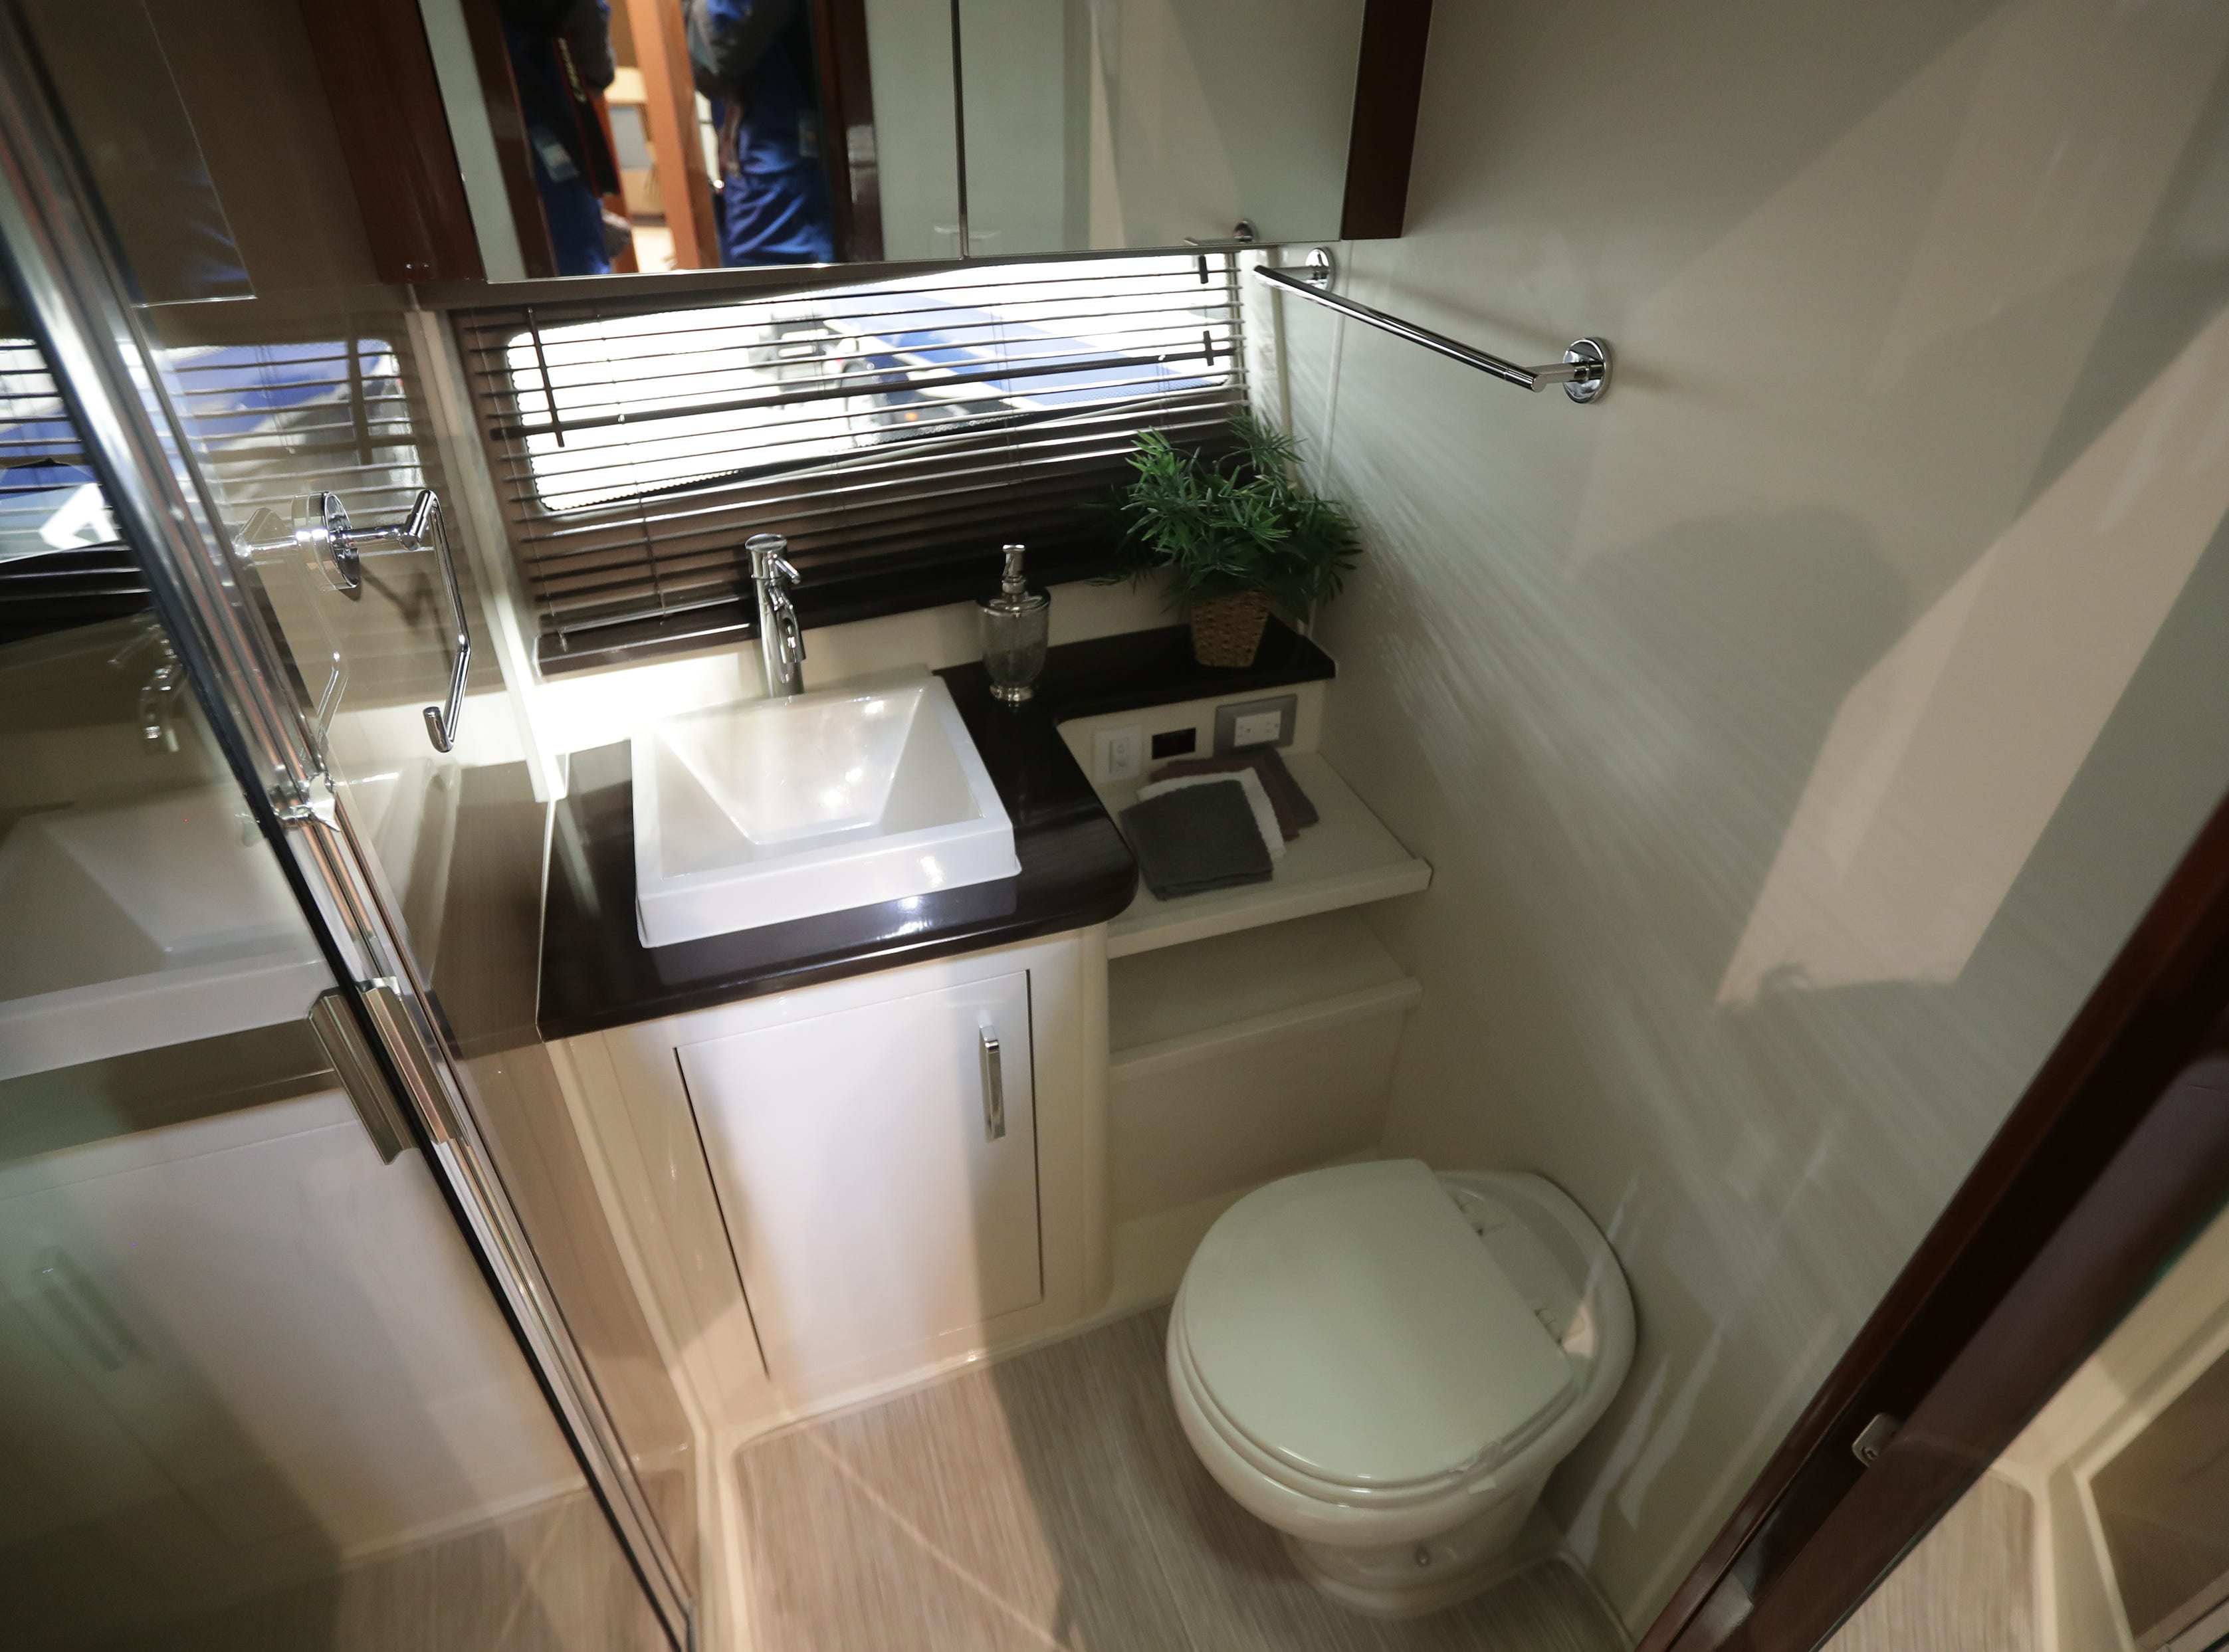 The bathroom of a 2019 37-foot Carver yacht, which lists for $459,000.